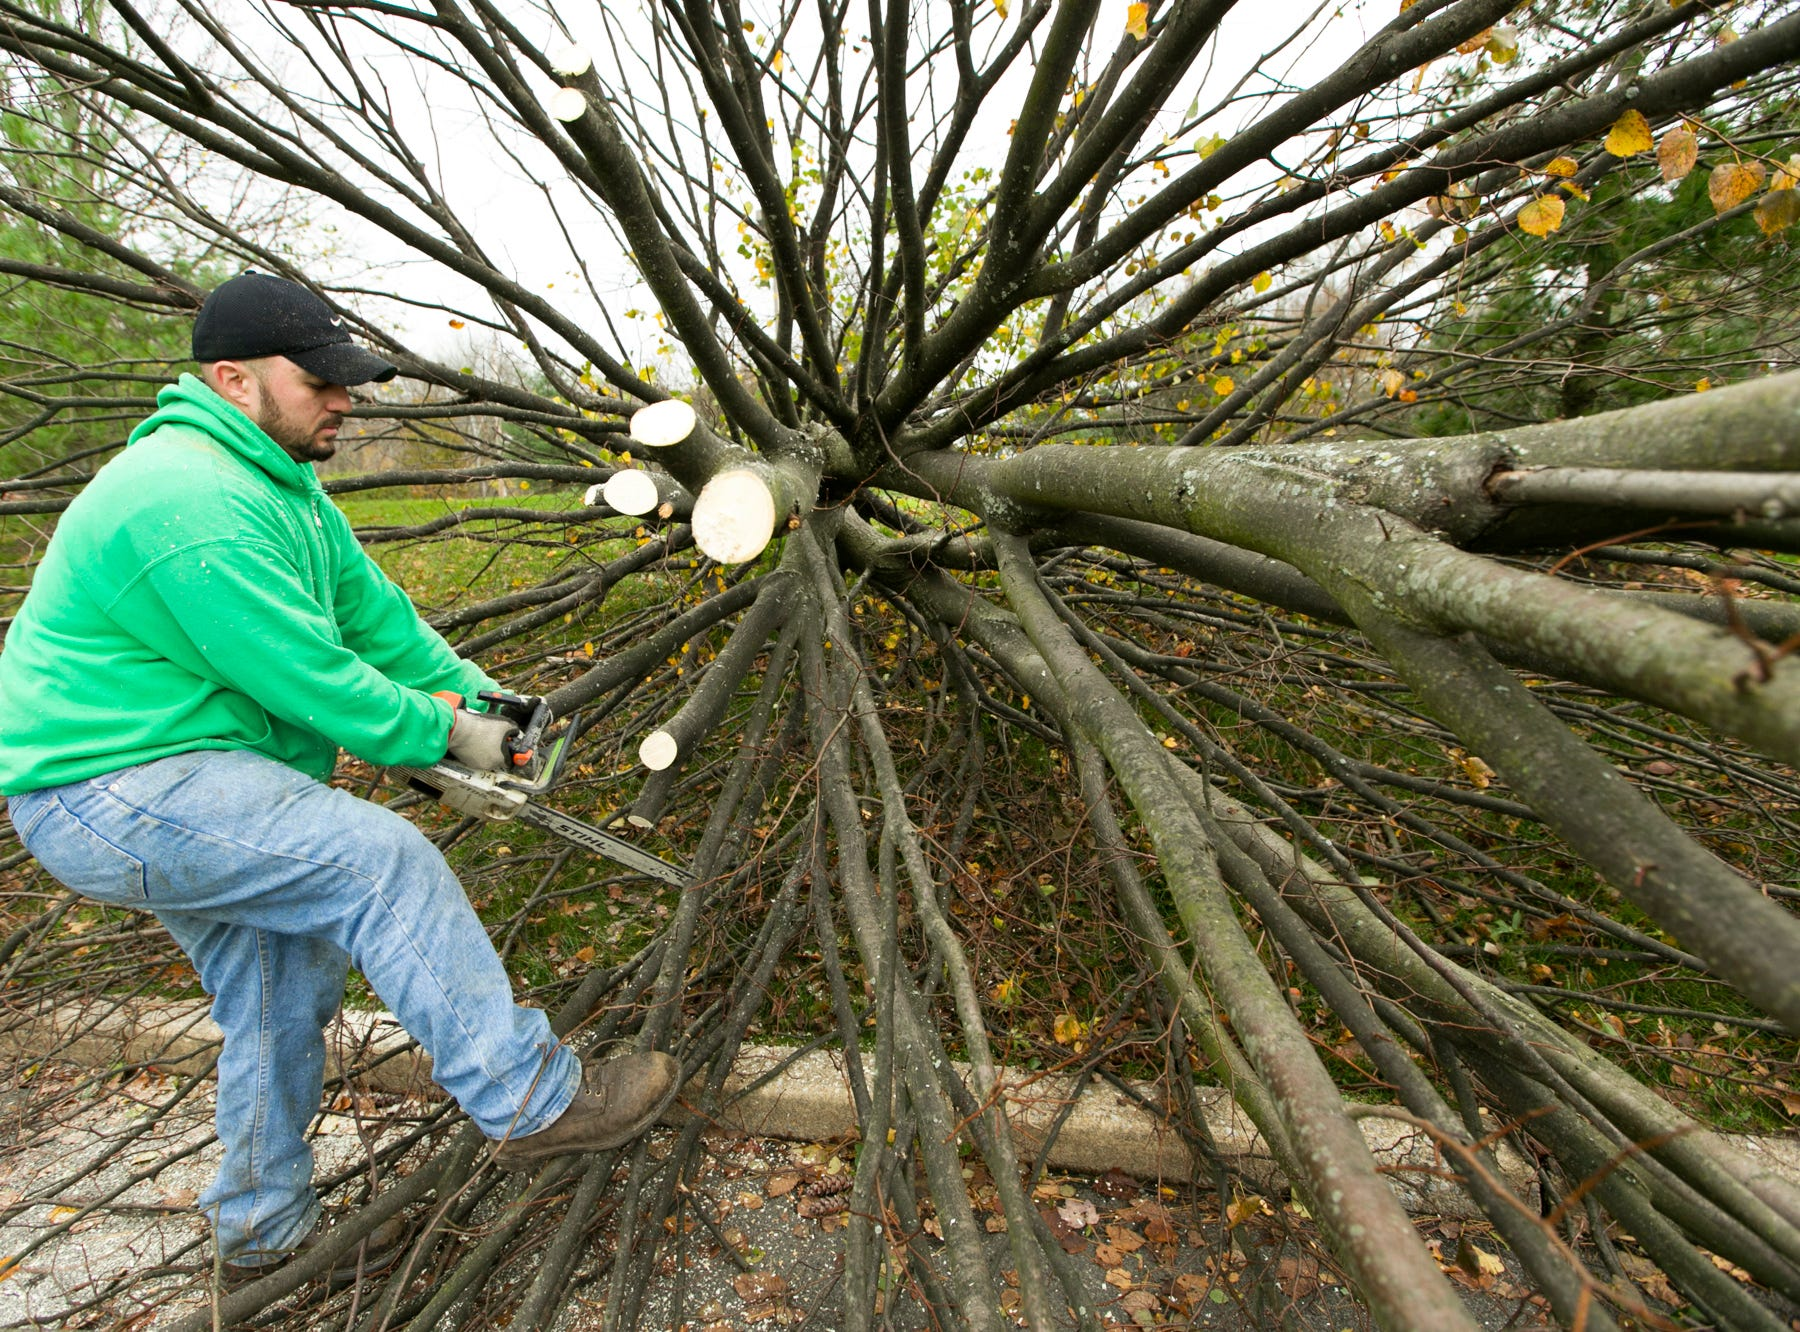 Sizar Barshani, a technician with Green Garden Landscaping Brothers, cuts up a fallen tree on Campus Drive in Totowa, a day and a half after Hurricane Sandy blew through.